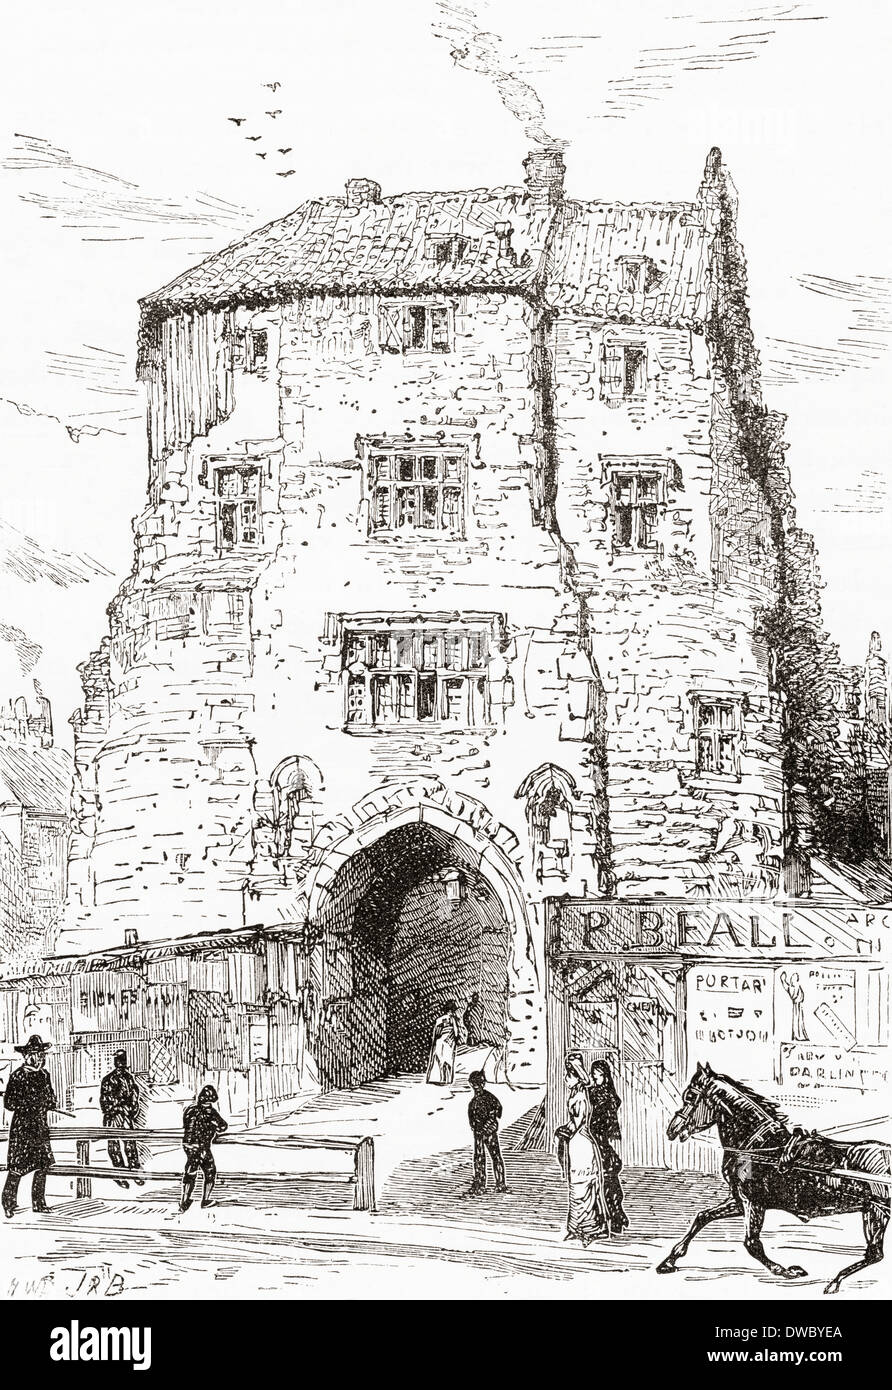 The Black Gate, the fortified gatehouse of The Castle, Newcastle-upon-Tyne, England in the 19th century - Stock Image